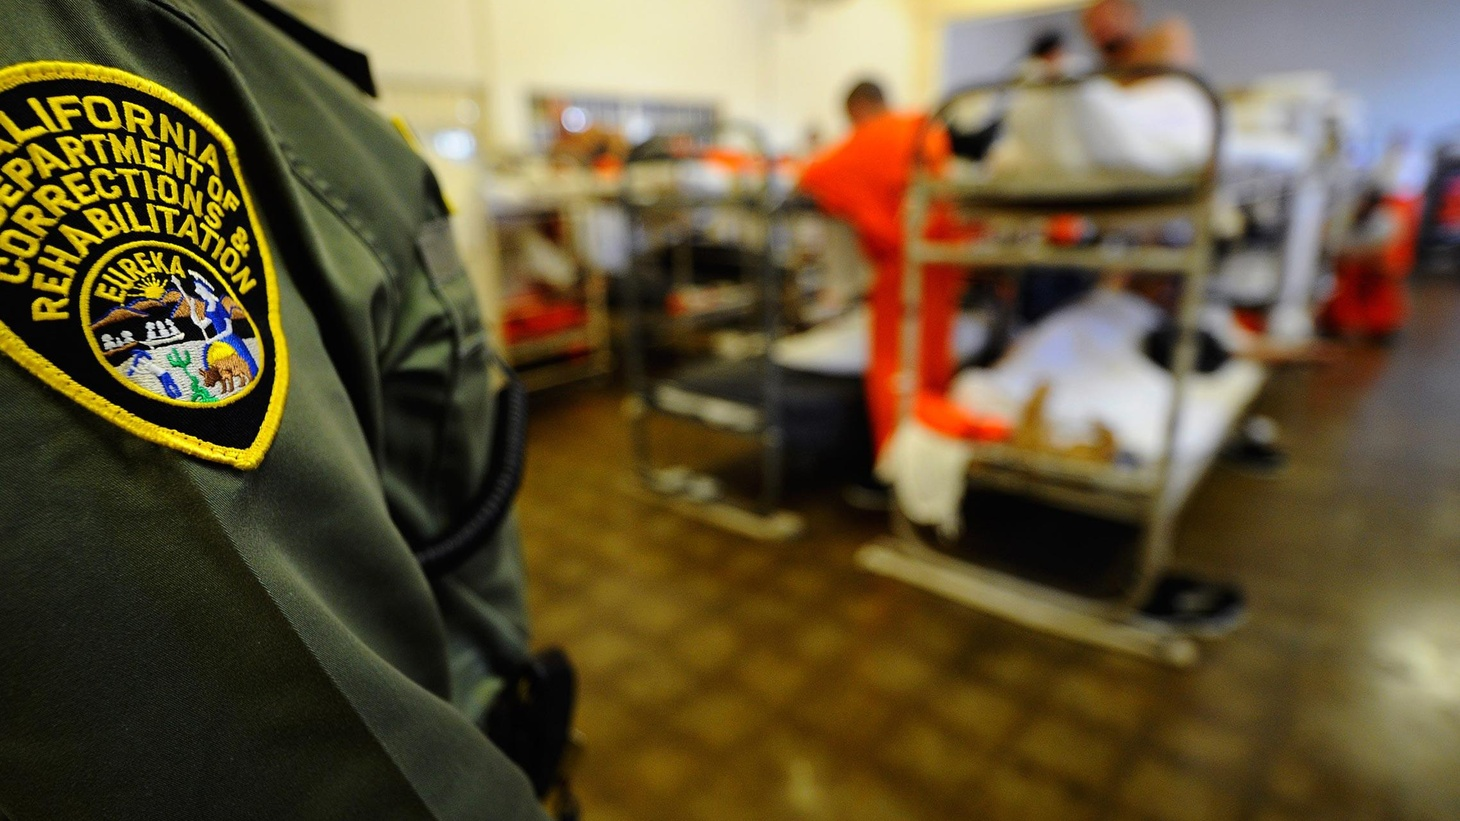 """To release overcrowding in state prisons, some 15,000 inmates and parolees are on their way to Los Angeles County starting this Saturday. Governor Brown calls it """"realignment..."""""""